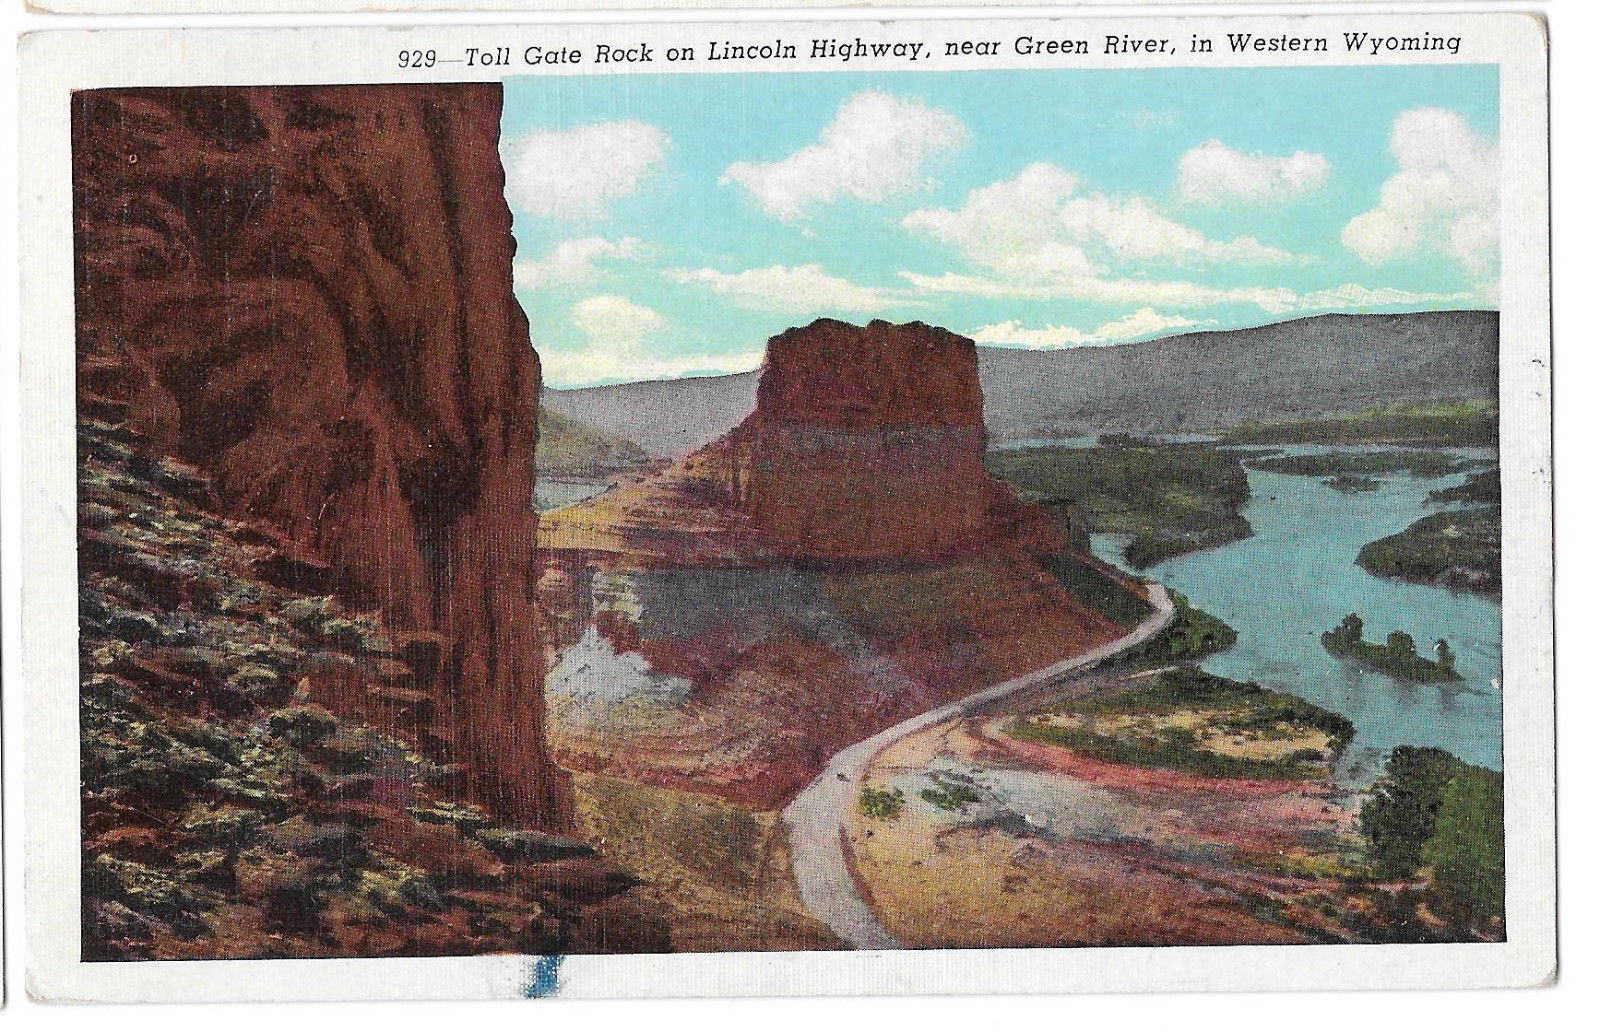 WY Green River Toll Gate Rock Lincoln Highway Vtg Sanborn Postcard Wyoming